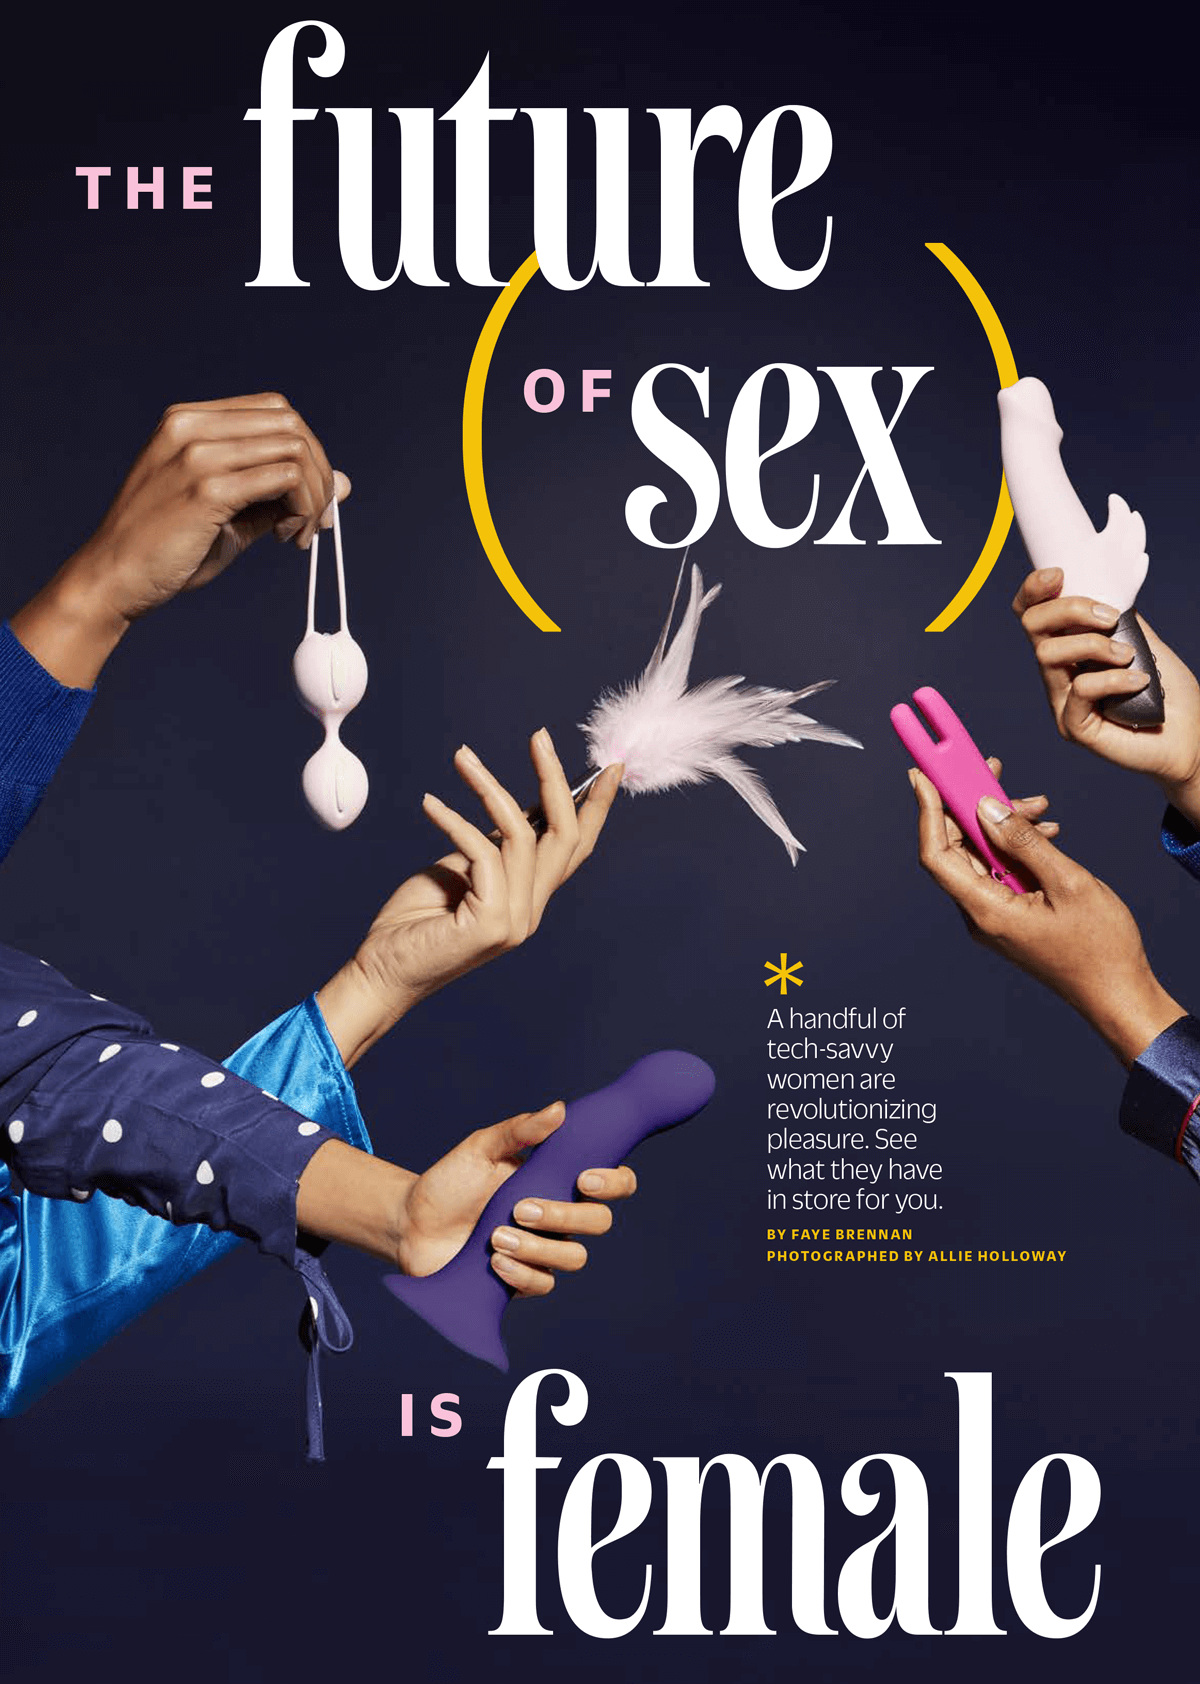 Cosmo speaks to Le Wand's founder Alicia Sinclair about how women are revolutionizing pleasure.